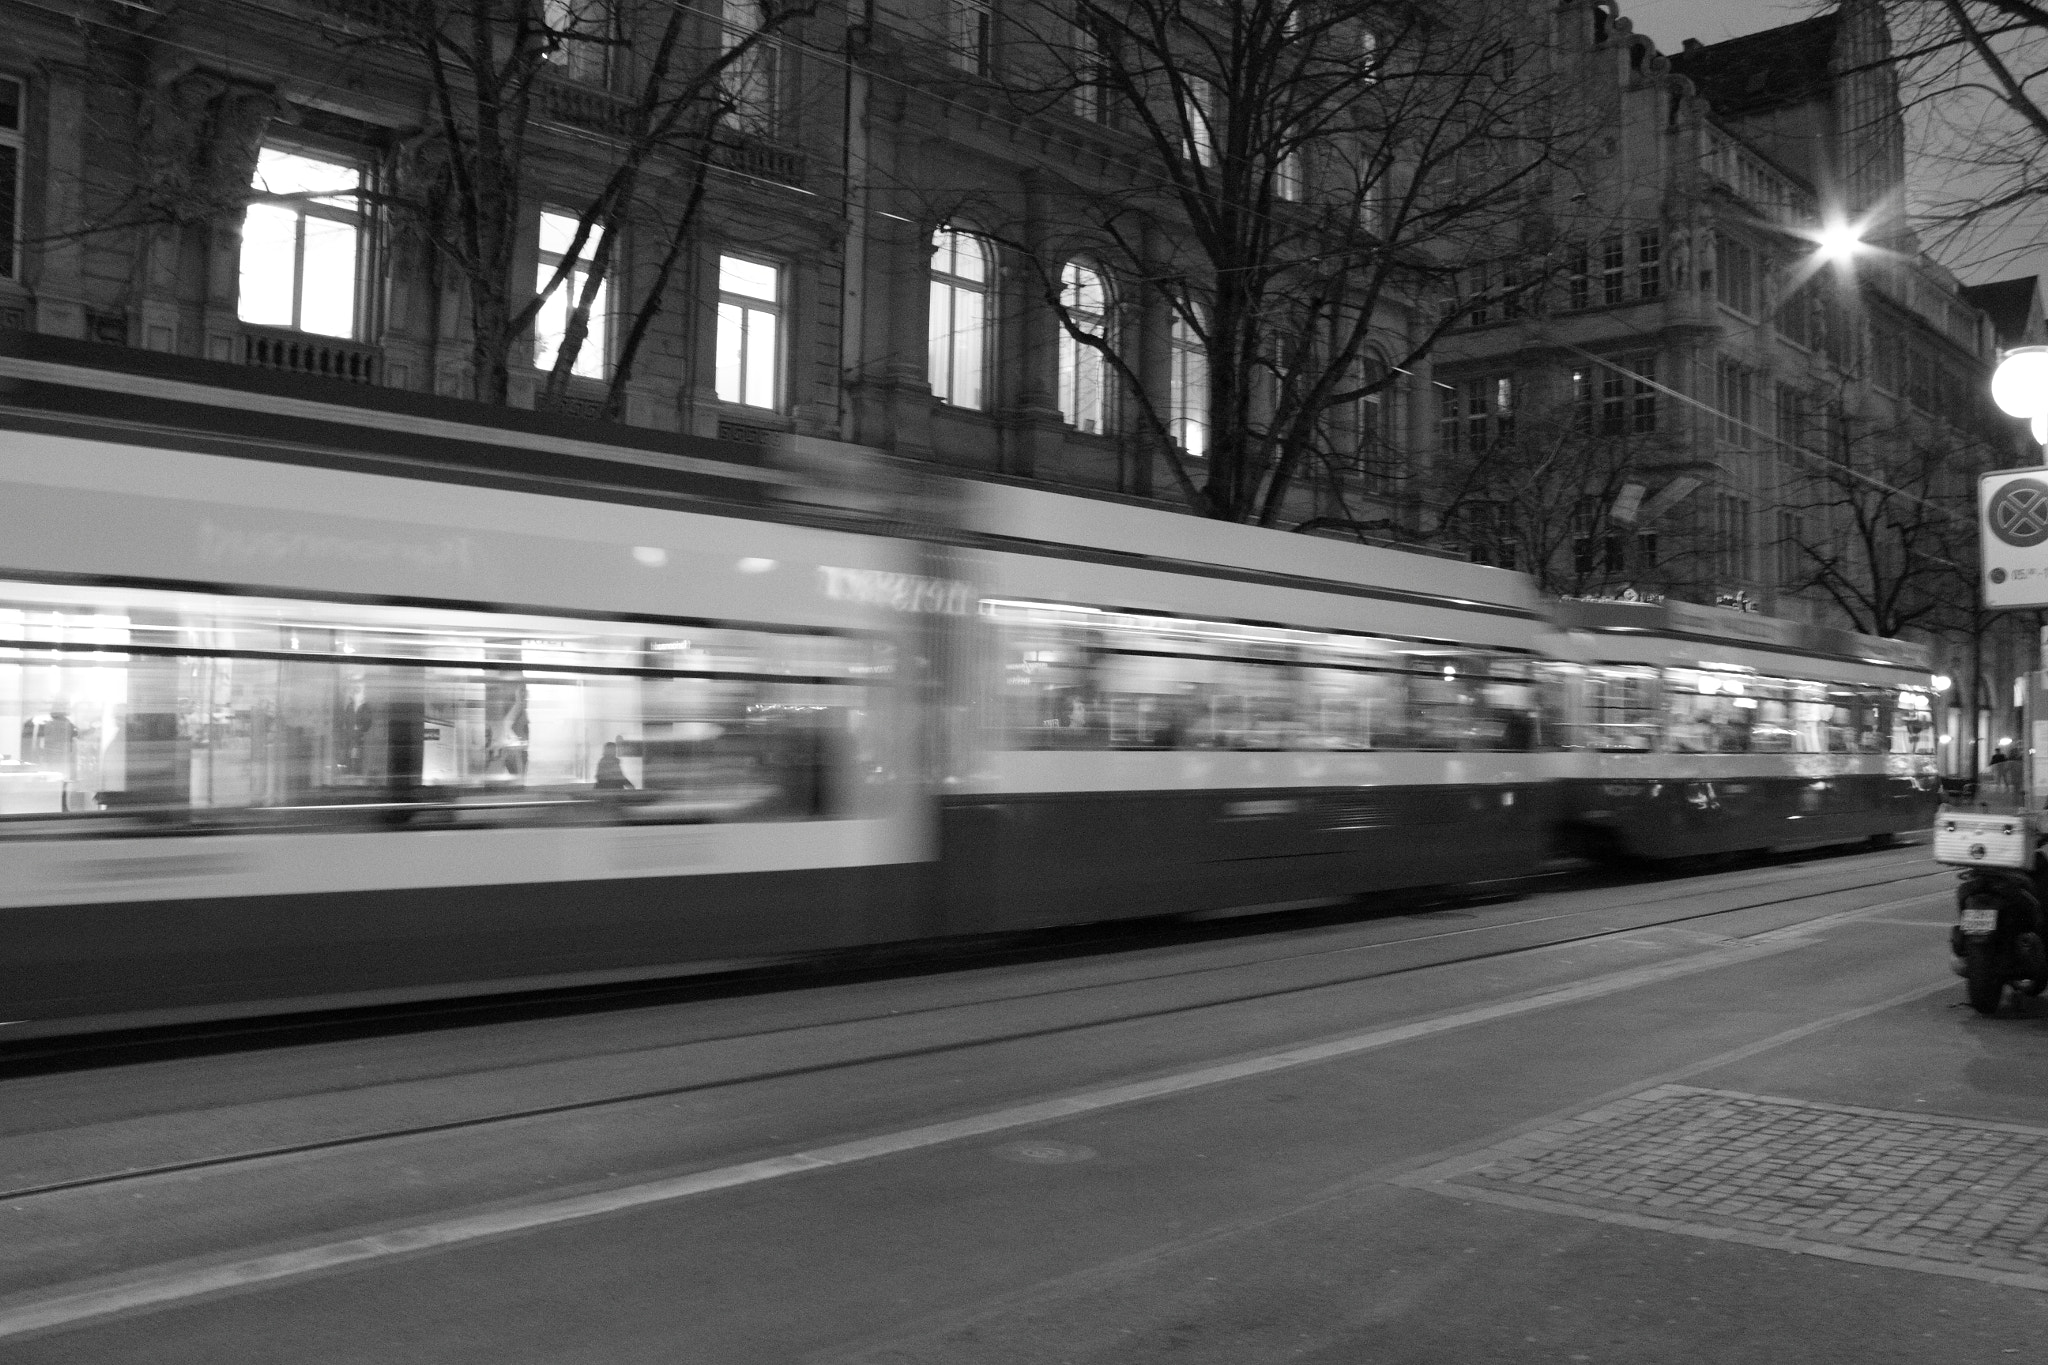 Photograph Tram by Miguel Pereira on 500px